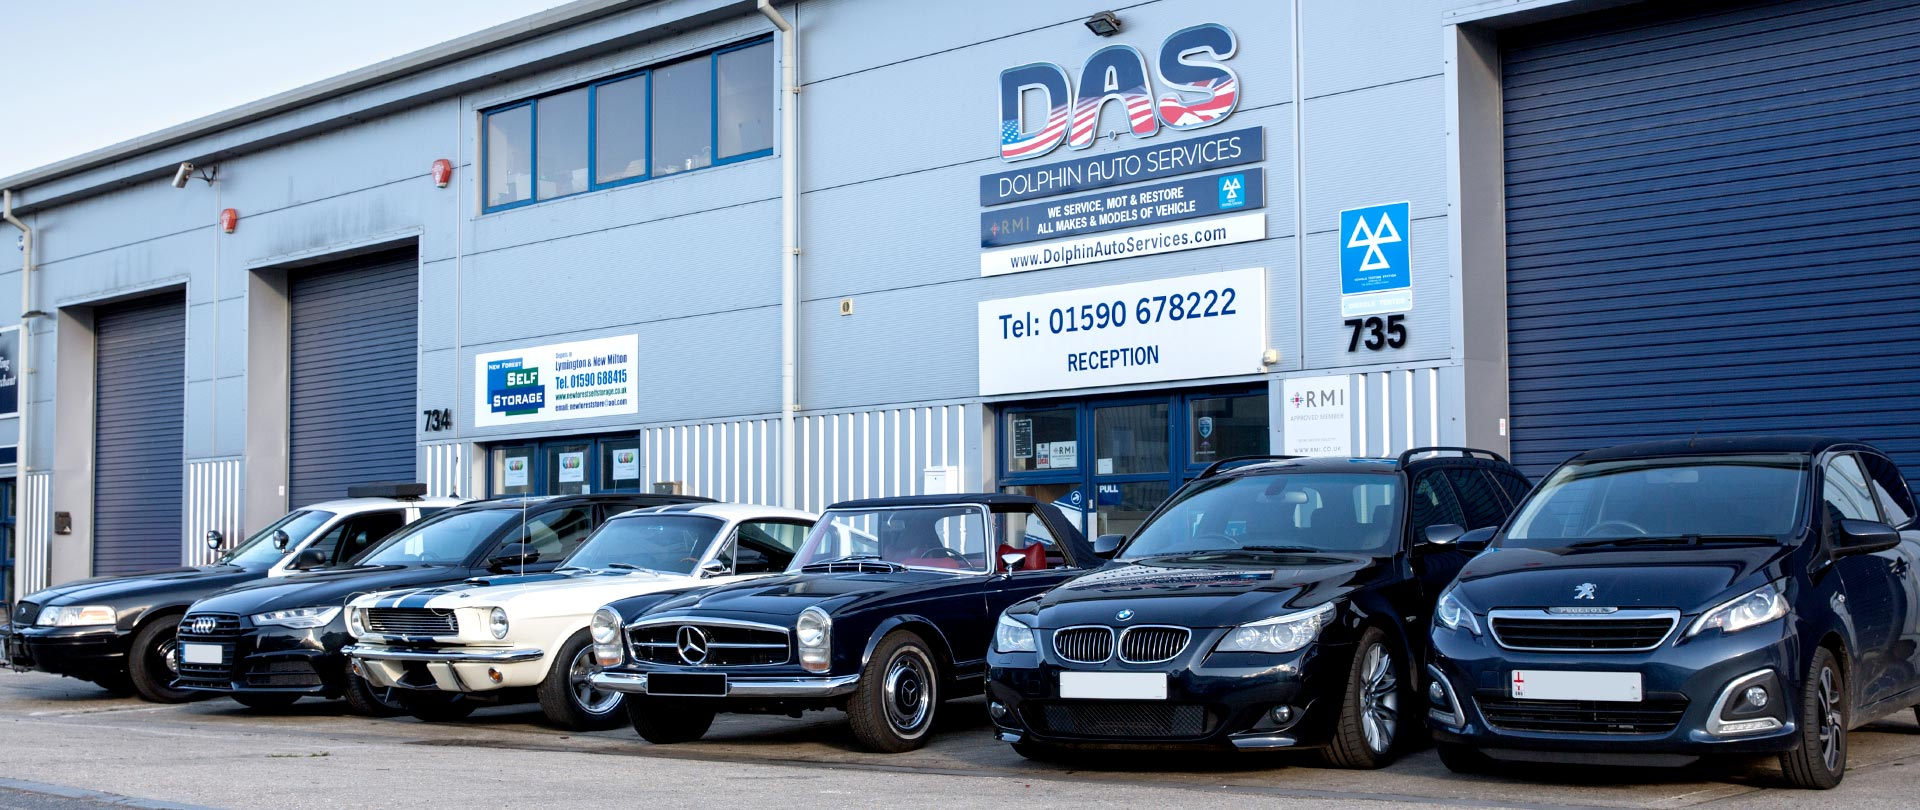 MOT, service & repairs on all types of vehicle